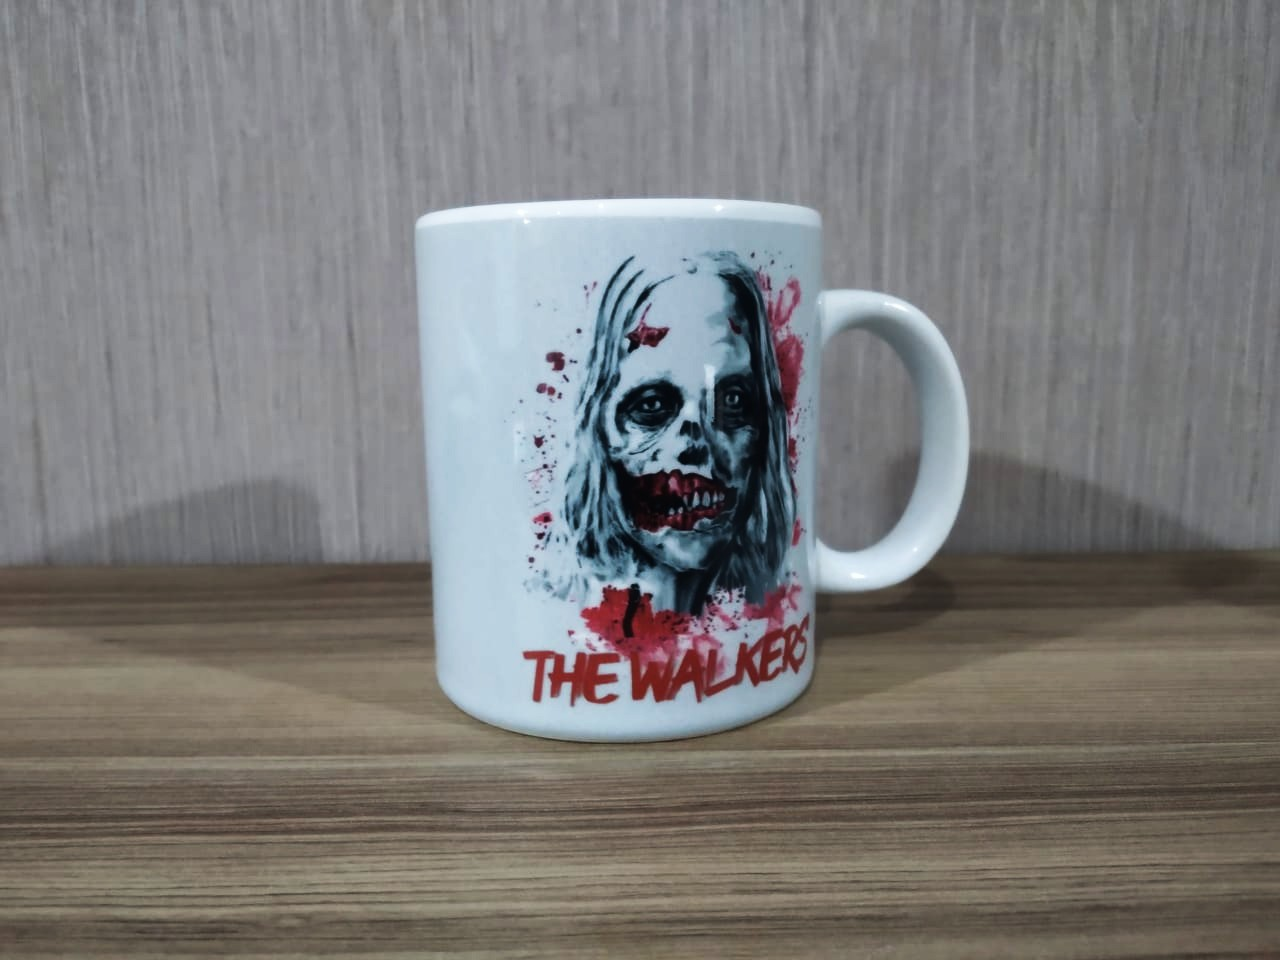 Caneca: The Walkers - The Walking Dead